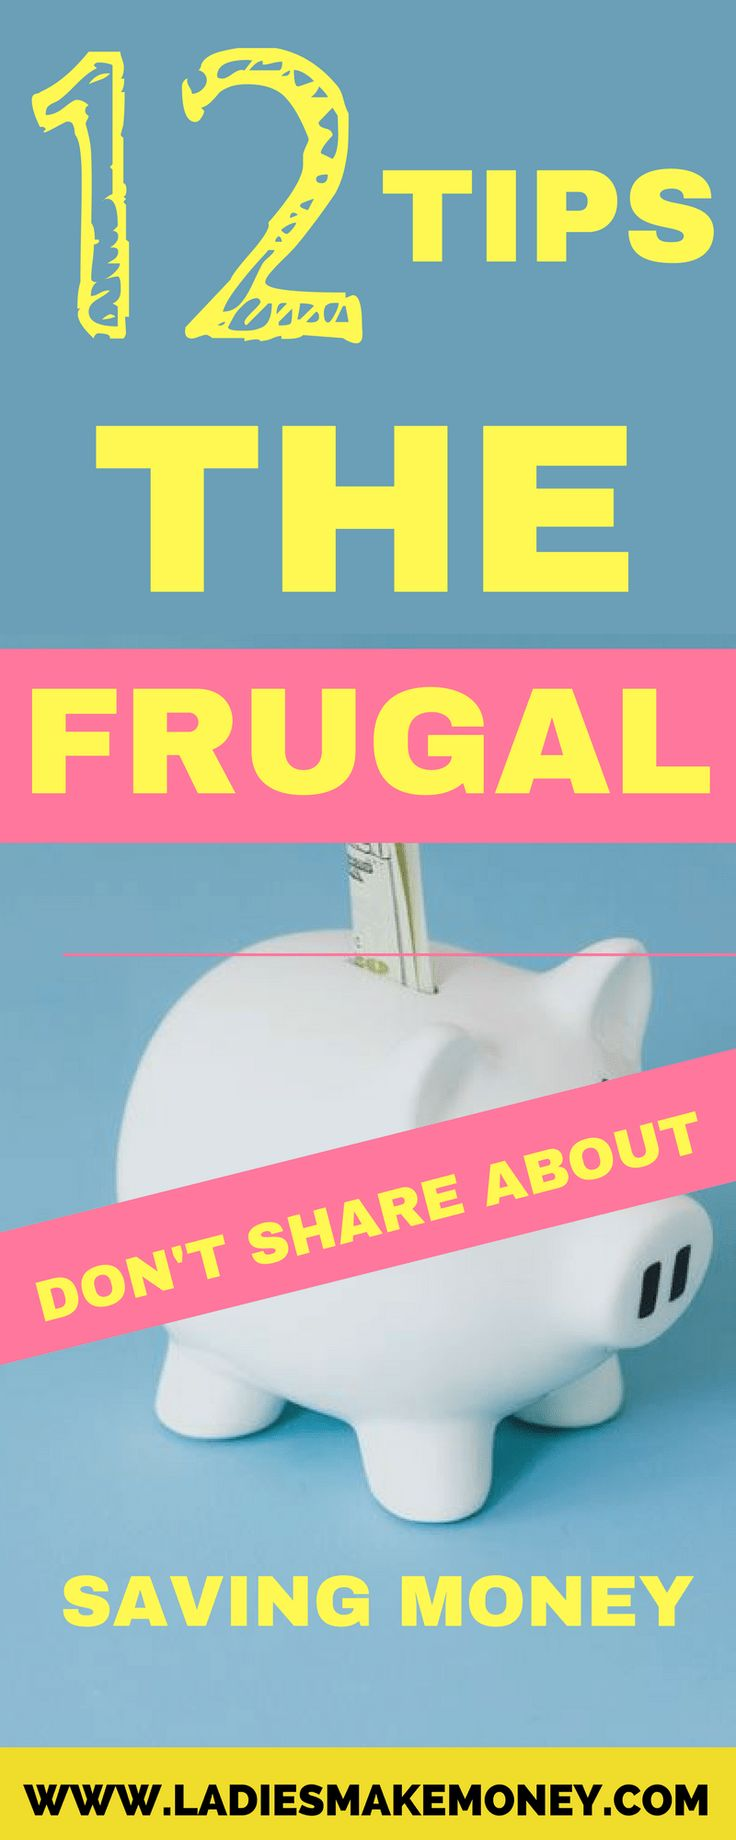 12 TIPS THE FRUGAL DO NOT SHARE ABOUT SAVING MONEY